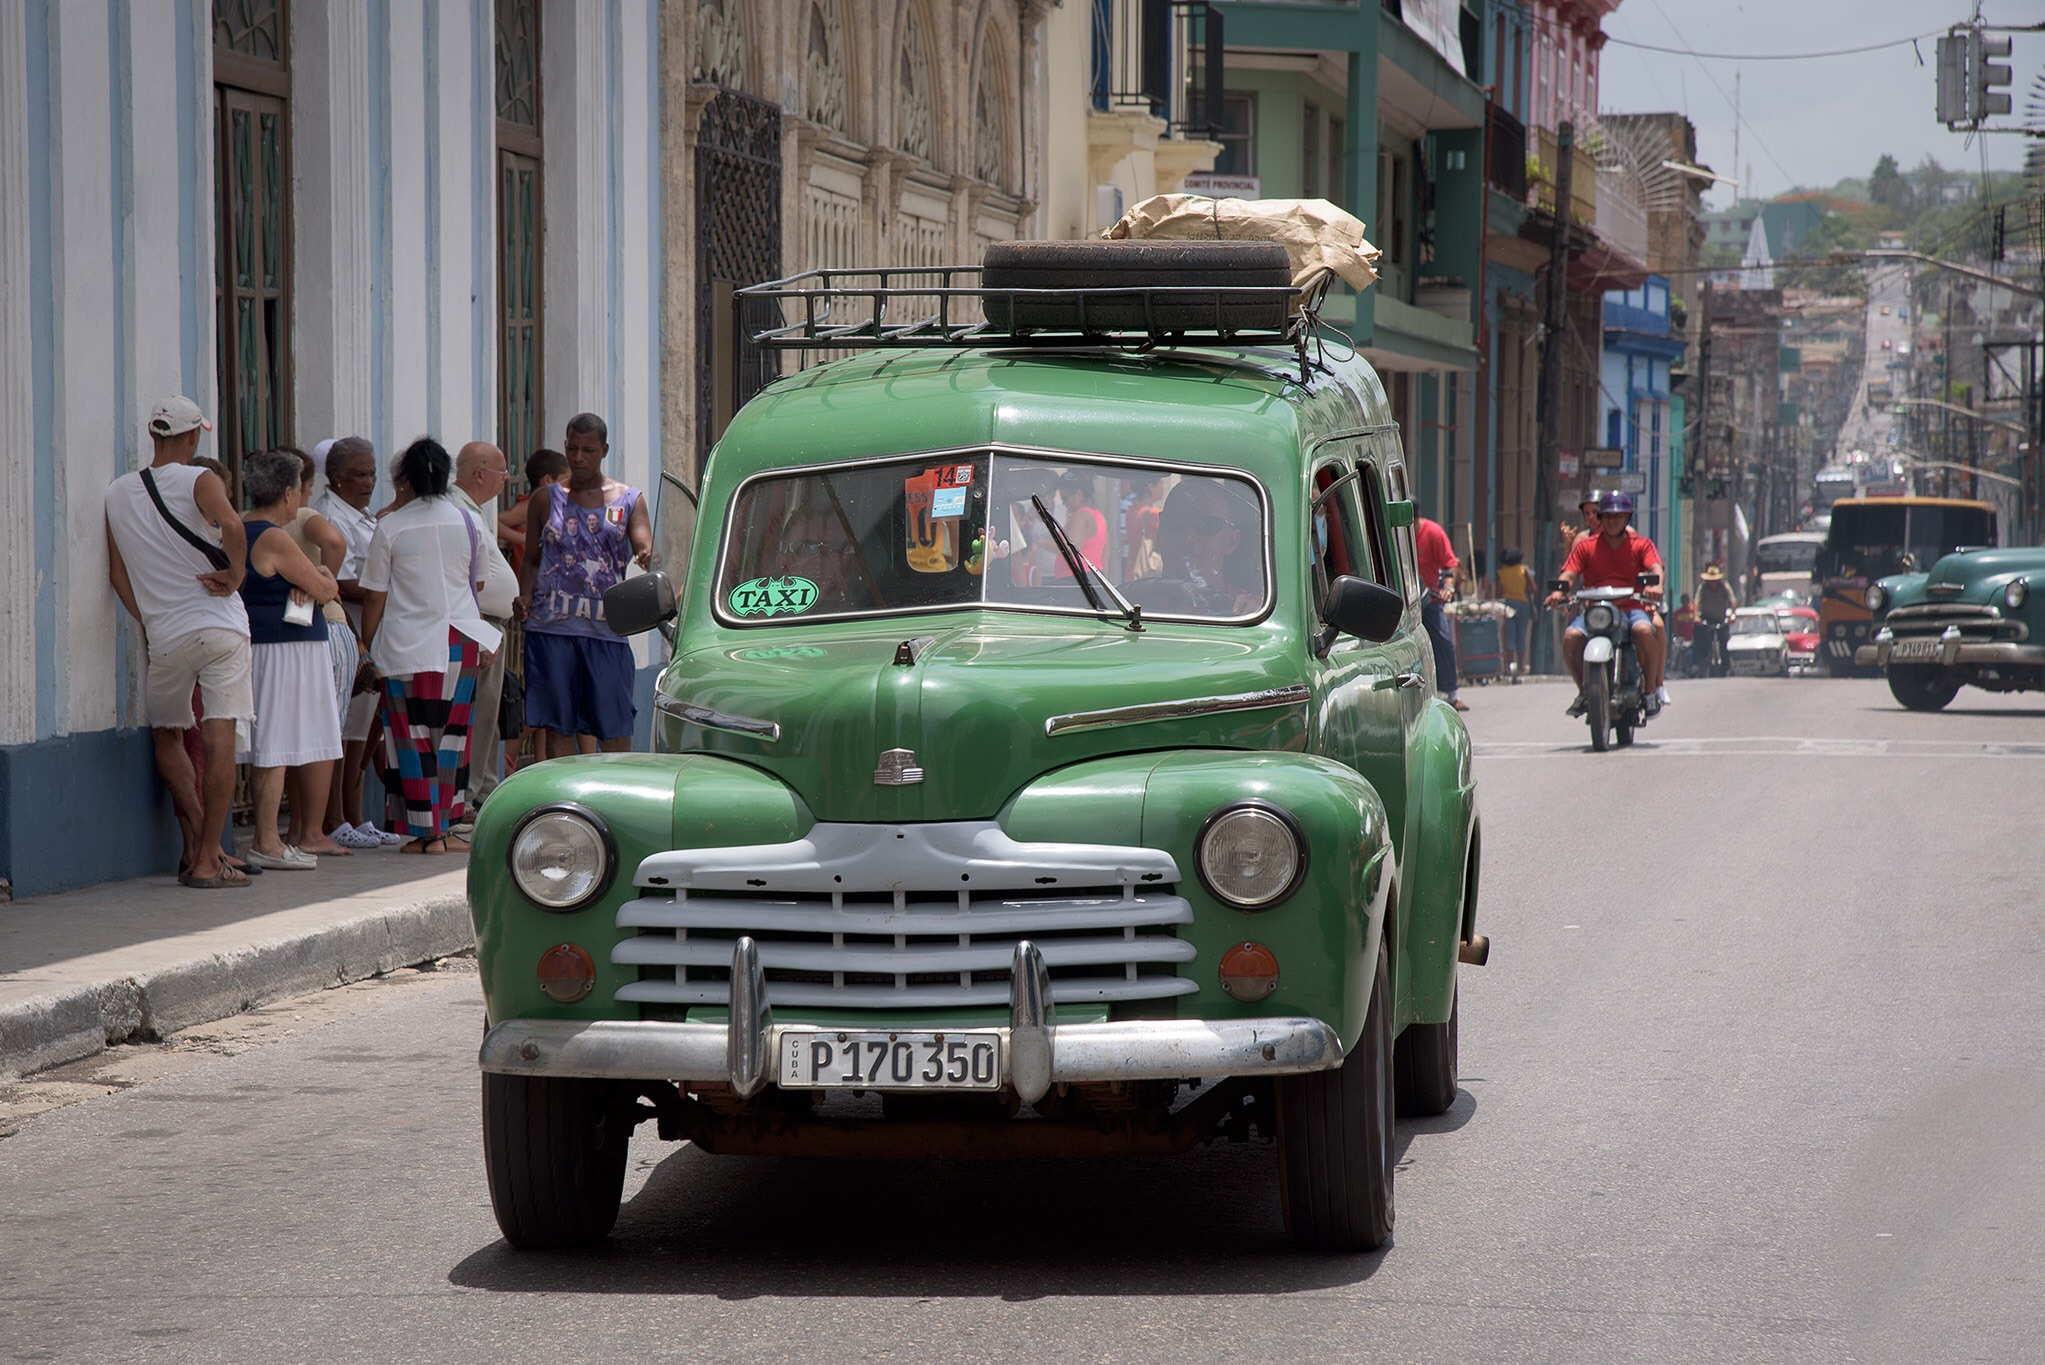 Cars, trucks, motorcycles, buses, on the road in Matanzas, most Cubans (seen waiting here) take the bus!